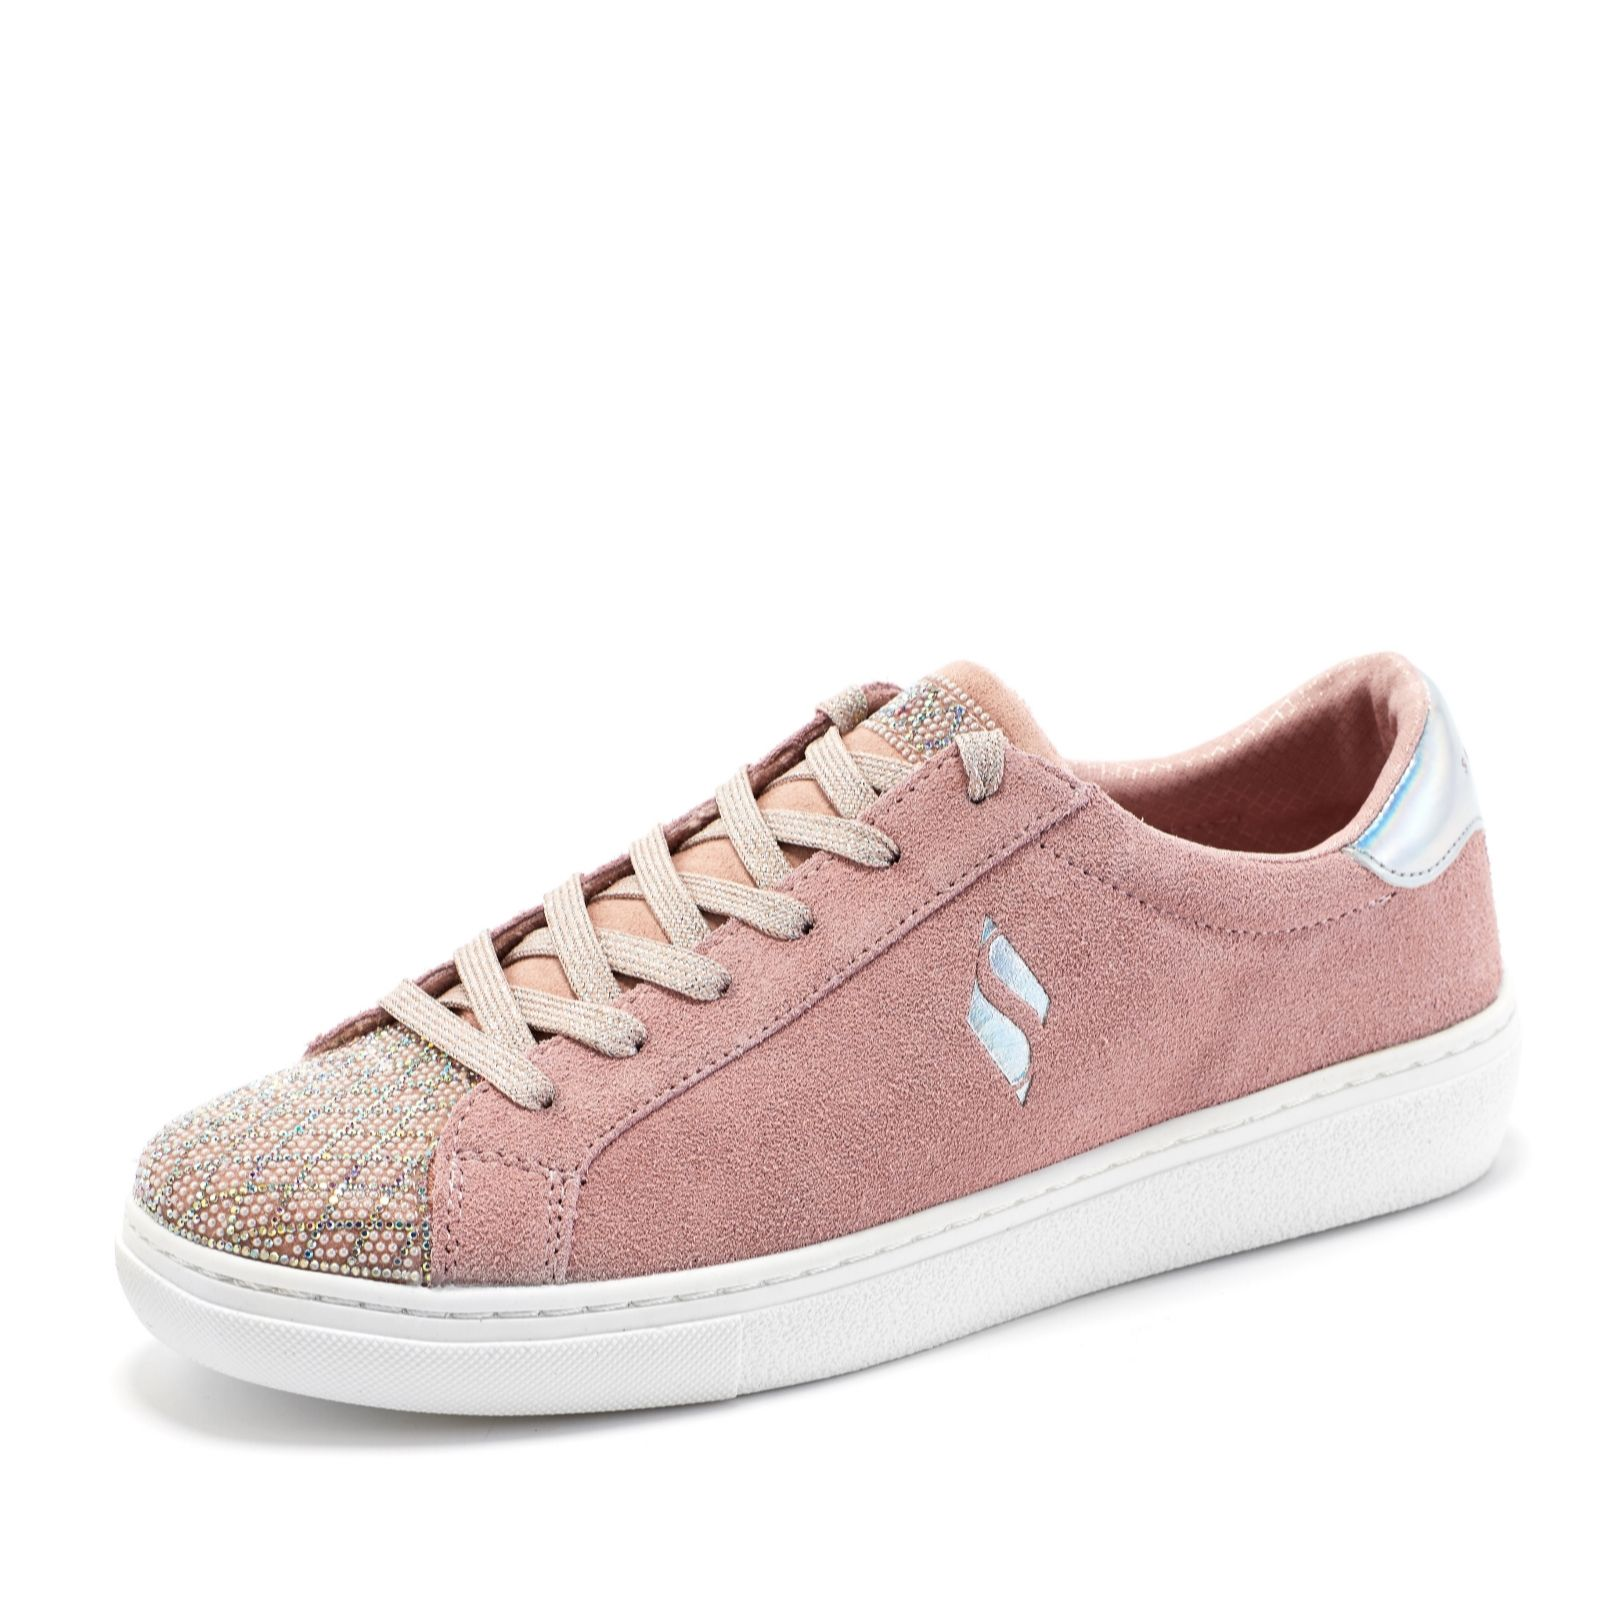 8392f8a6e14 Skechers Street Suede And Sparkle Lace Up Trainer - QVC UK